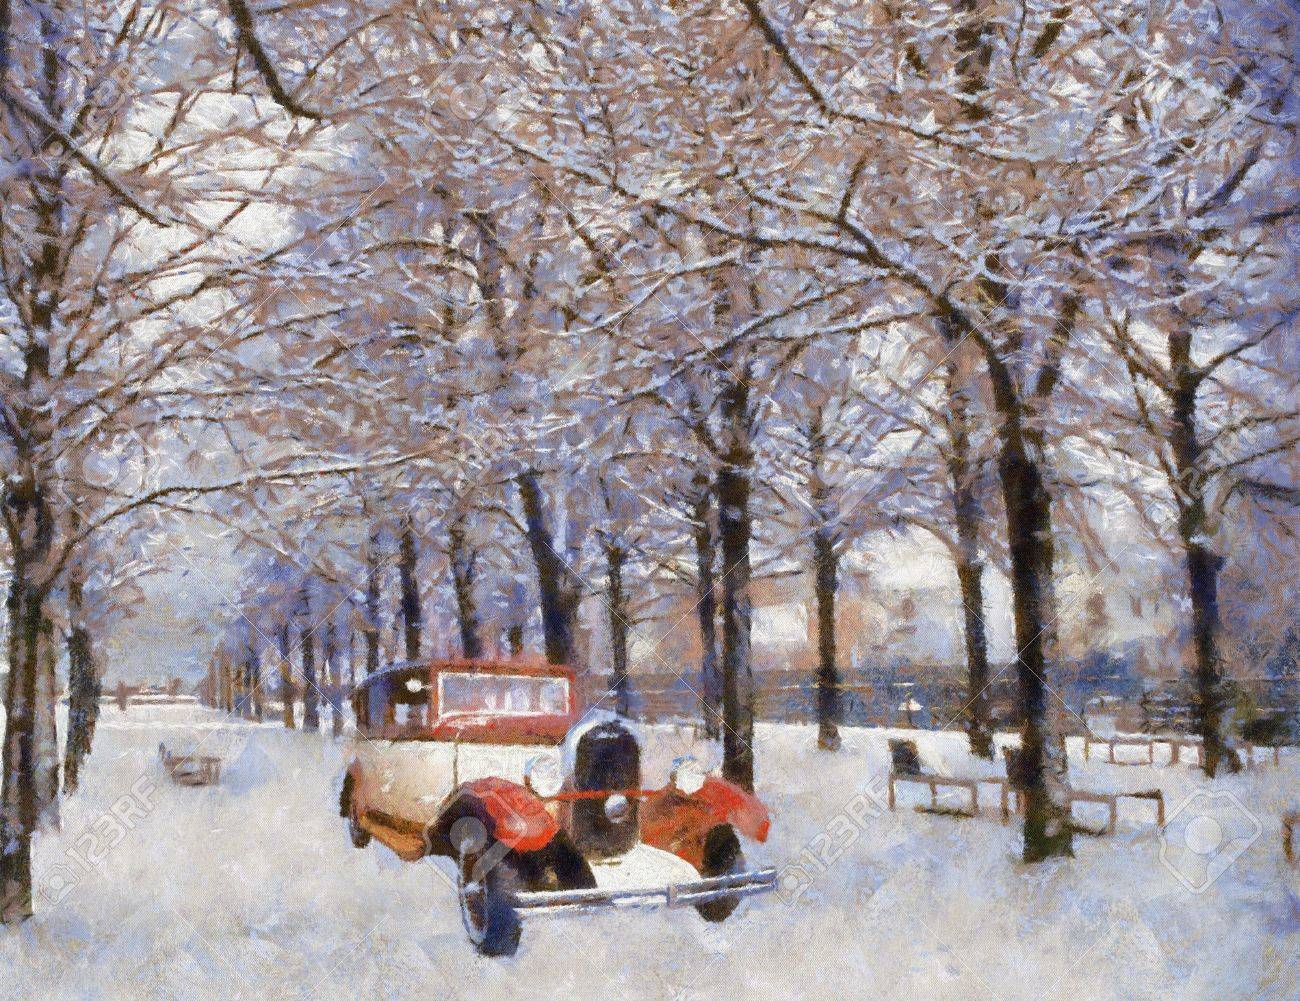 Front view of a vintage Chenard Walcker 1928 passenger vehicle on snowy road. Oil painted. Stock Photo - 8966755